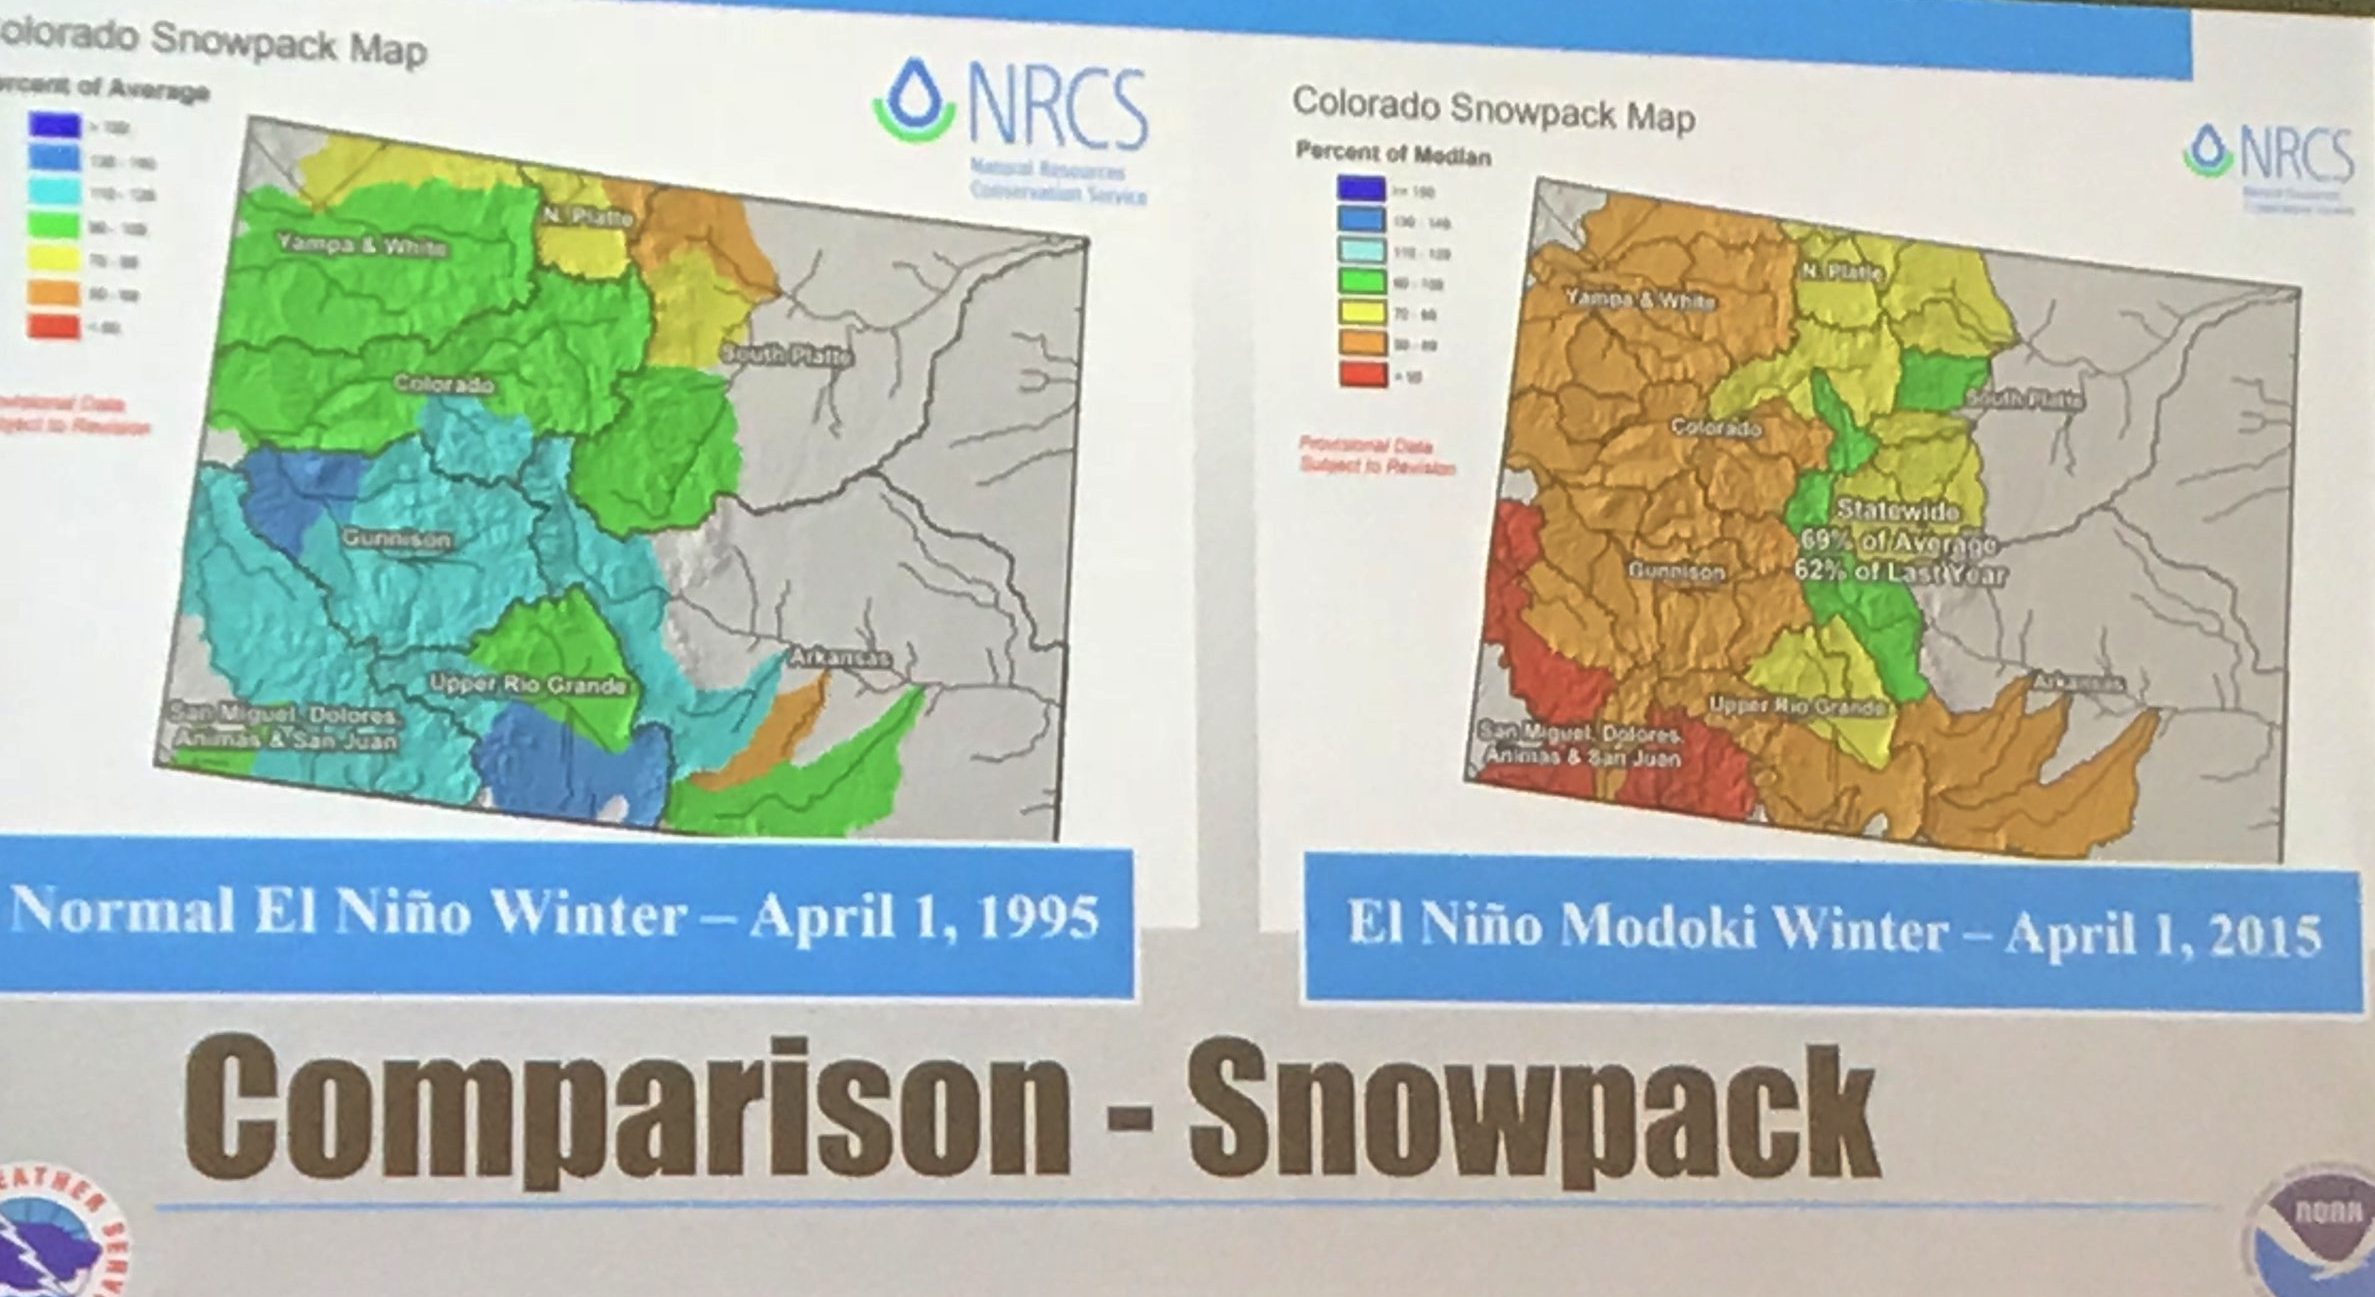 """Two potential years snowpacks based on historical years, although we're trending towards looking like a """"Modoki"""" winter with lower snowpack."""